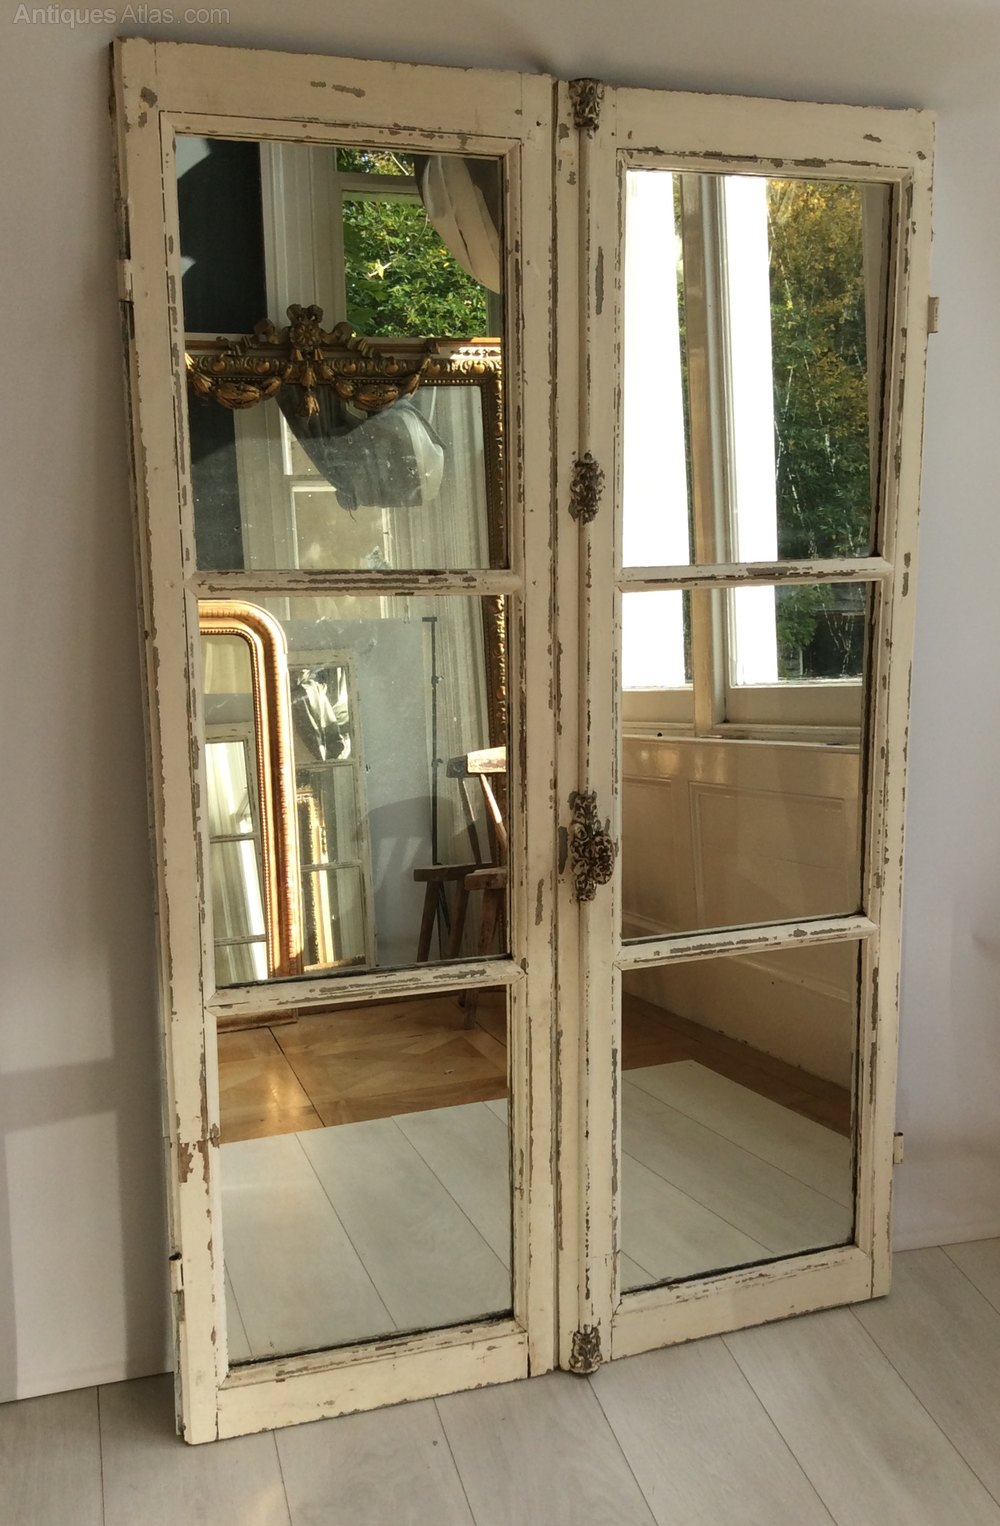 Antique French window mirror Antique Doors and Doorways ... - Antiques Atlas - Antique French Window Mirror